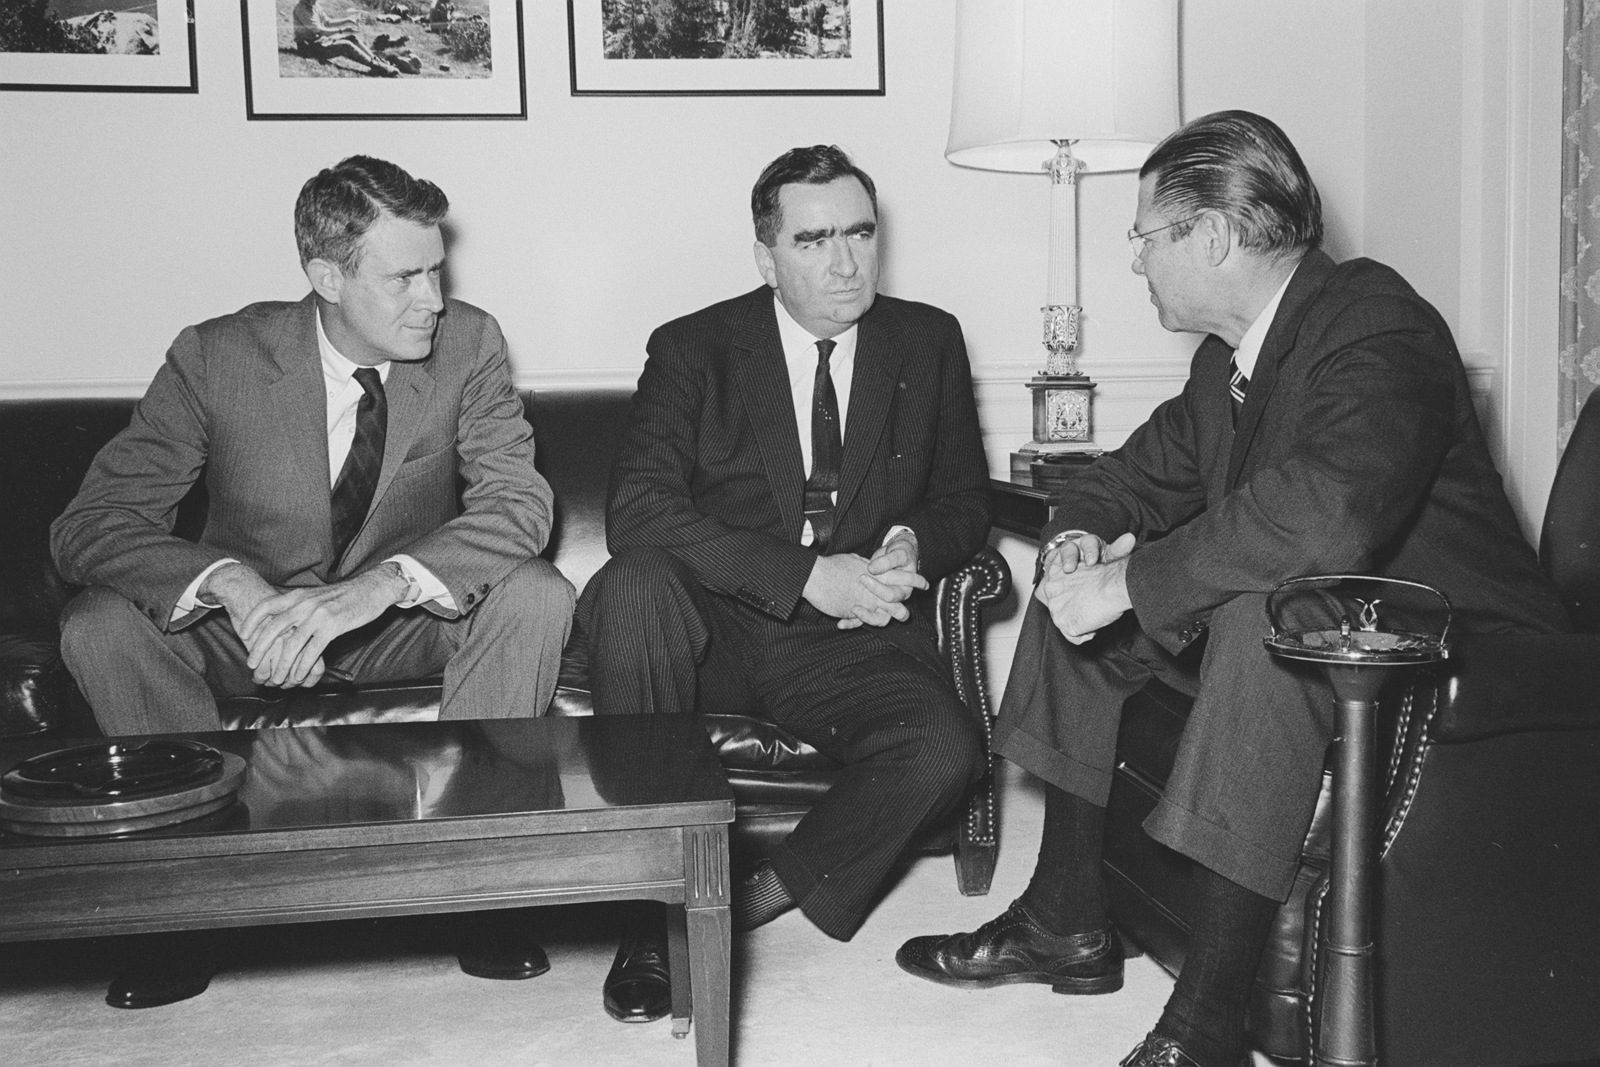 Secretary of Defense Robert S. McNamara, right, and Deputy Secretary of Defense Cyrus Vance, left, meet at the Pentagon with Denis Healey, secretary of state for defense, Great Britain